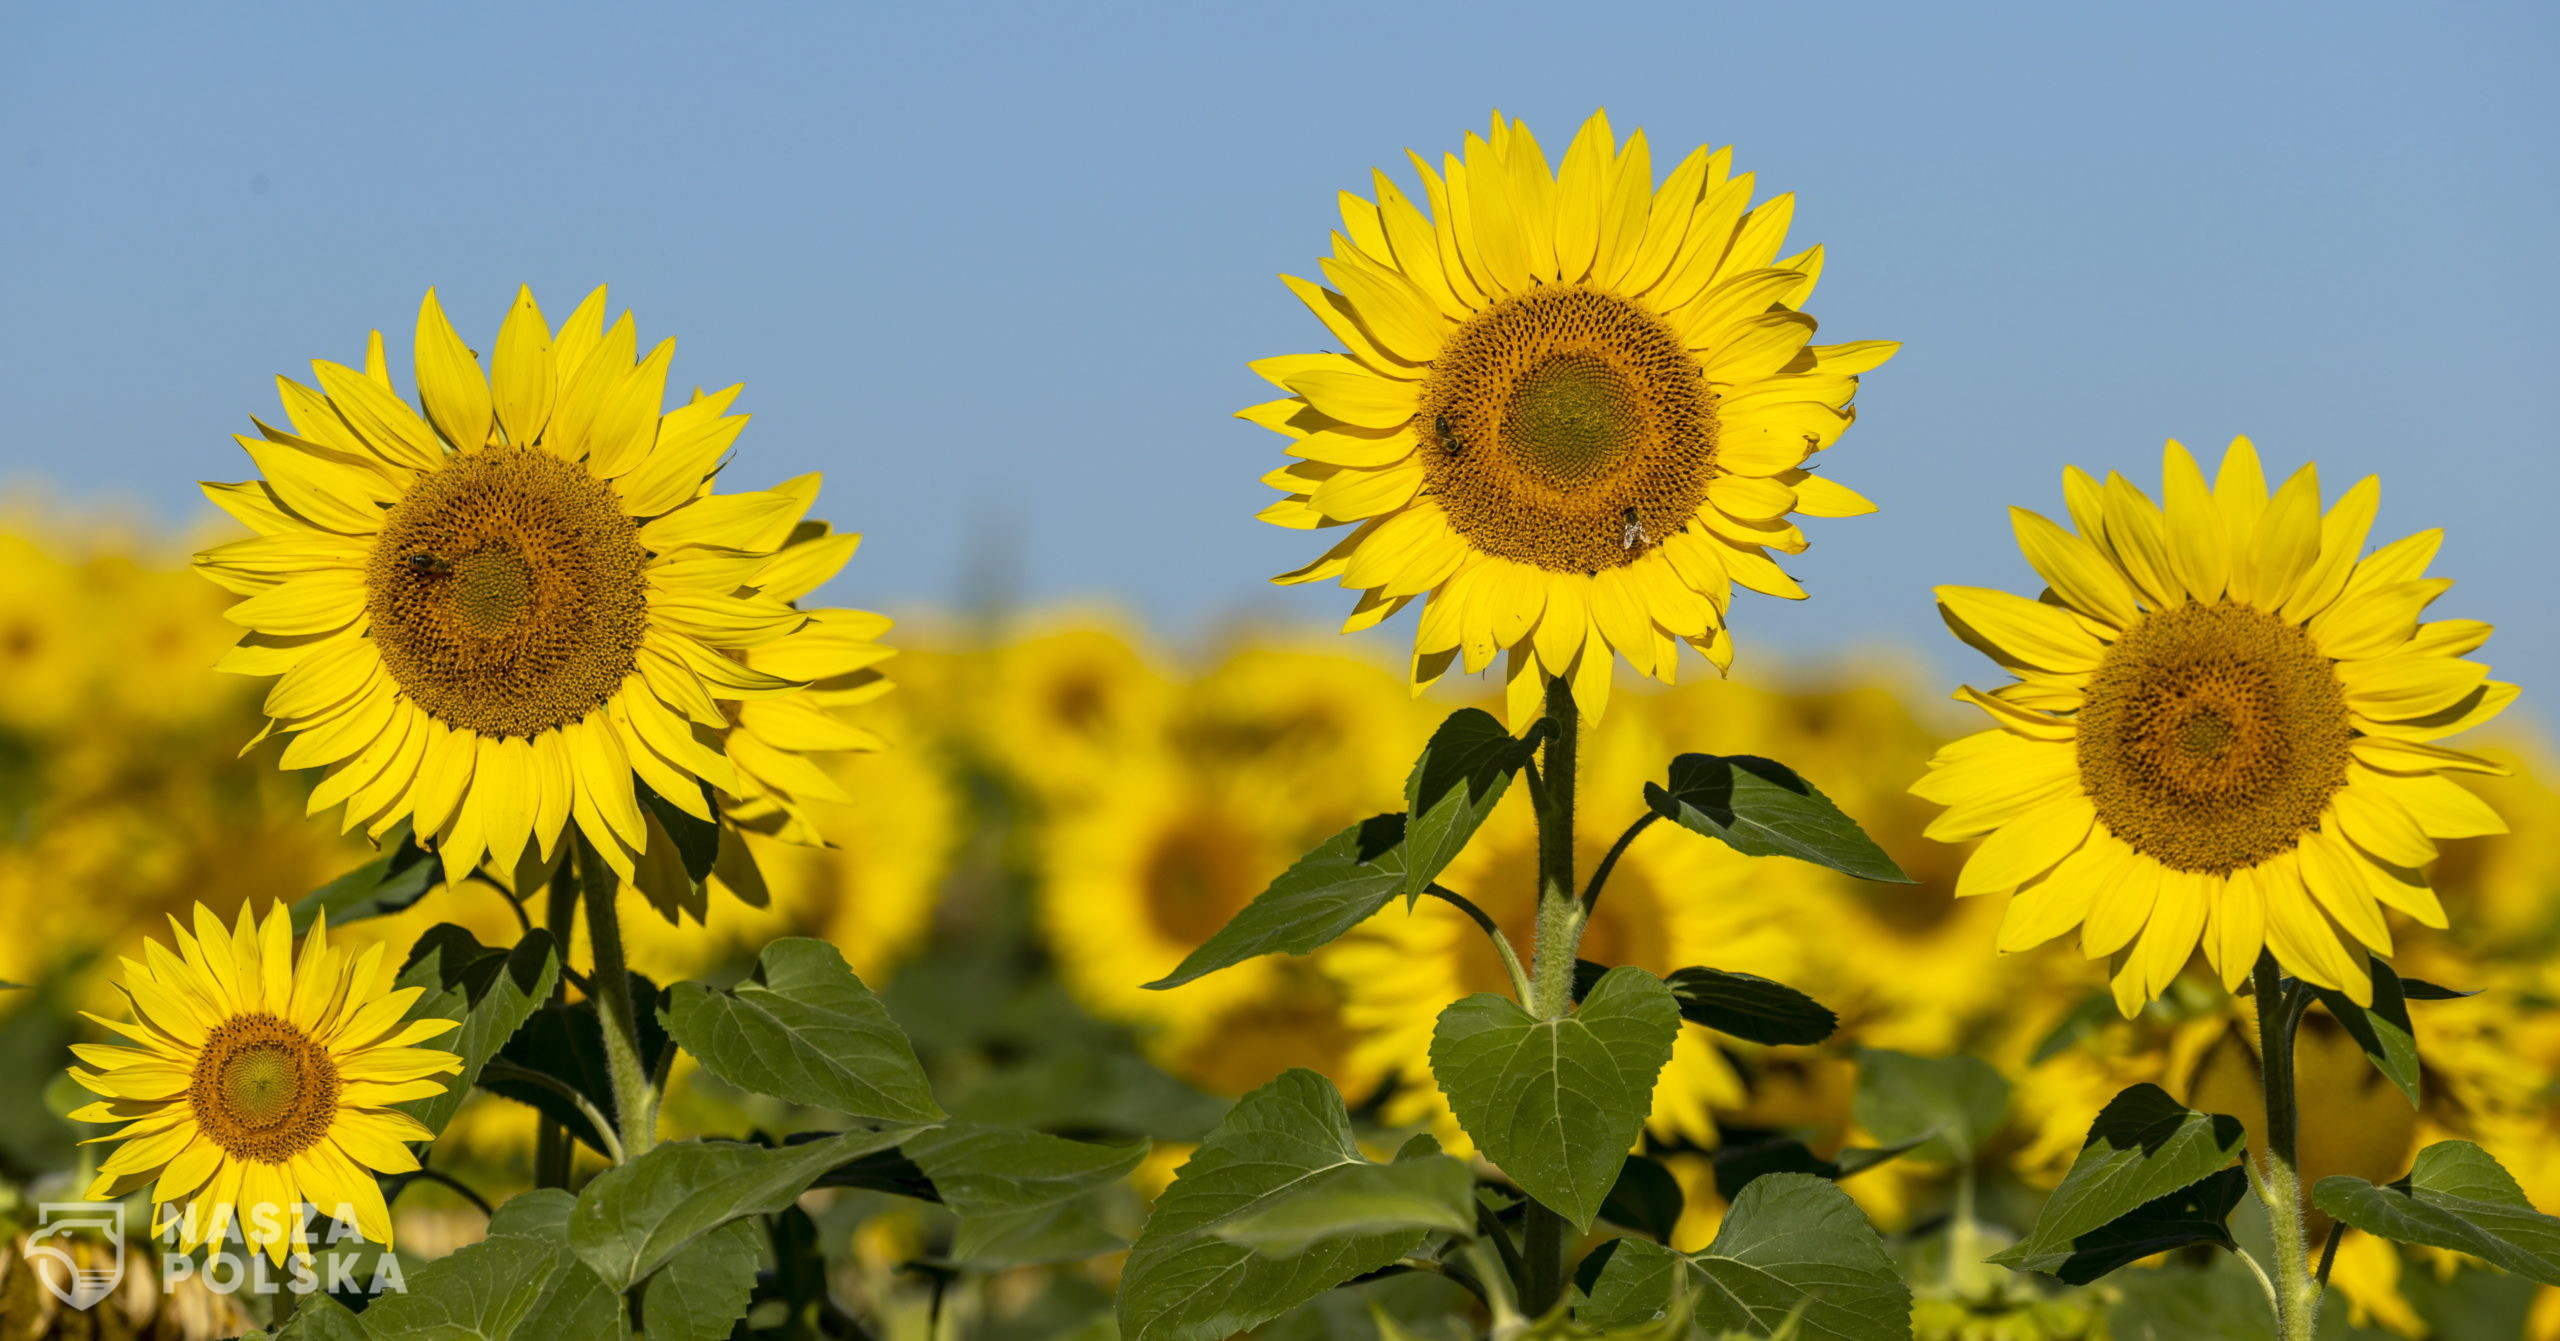 epa08573803 Sunflowers bloom in a field near Alzey, Germany, 30 July 2020. According to weather forecasts, the next days are expected to bring temperatures at about 34 degrees Celsius in south-western Germany.  EPA/RONALD WITTEK  Dostawca: PAP/EPA.